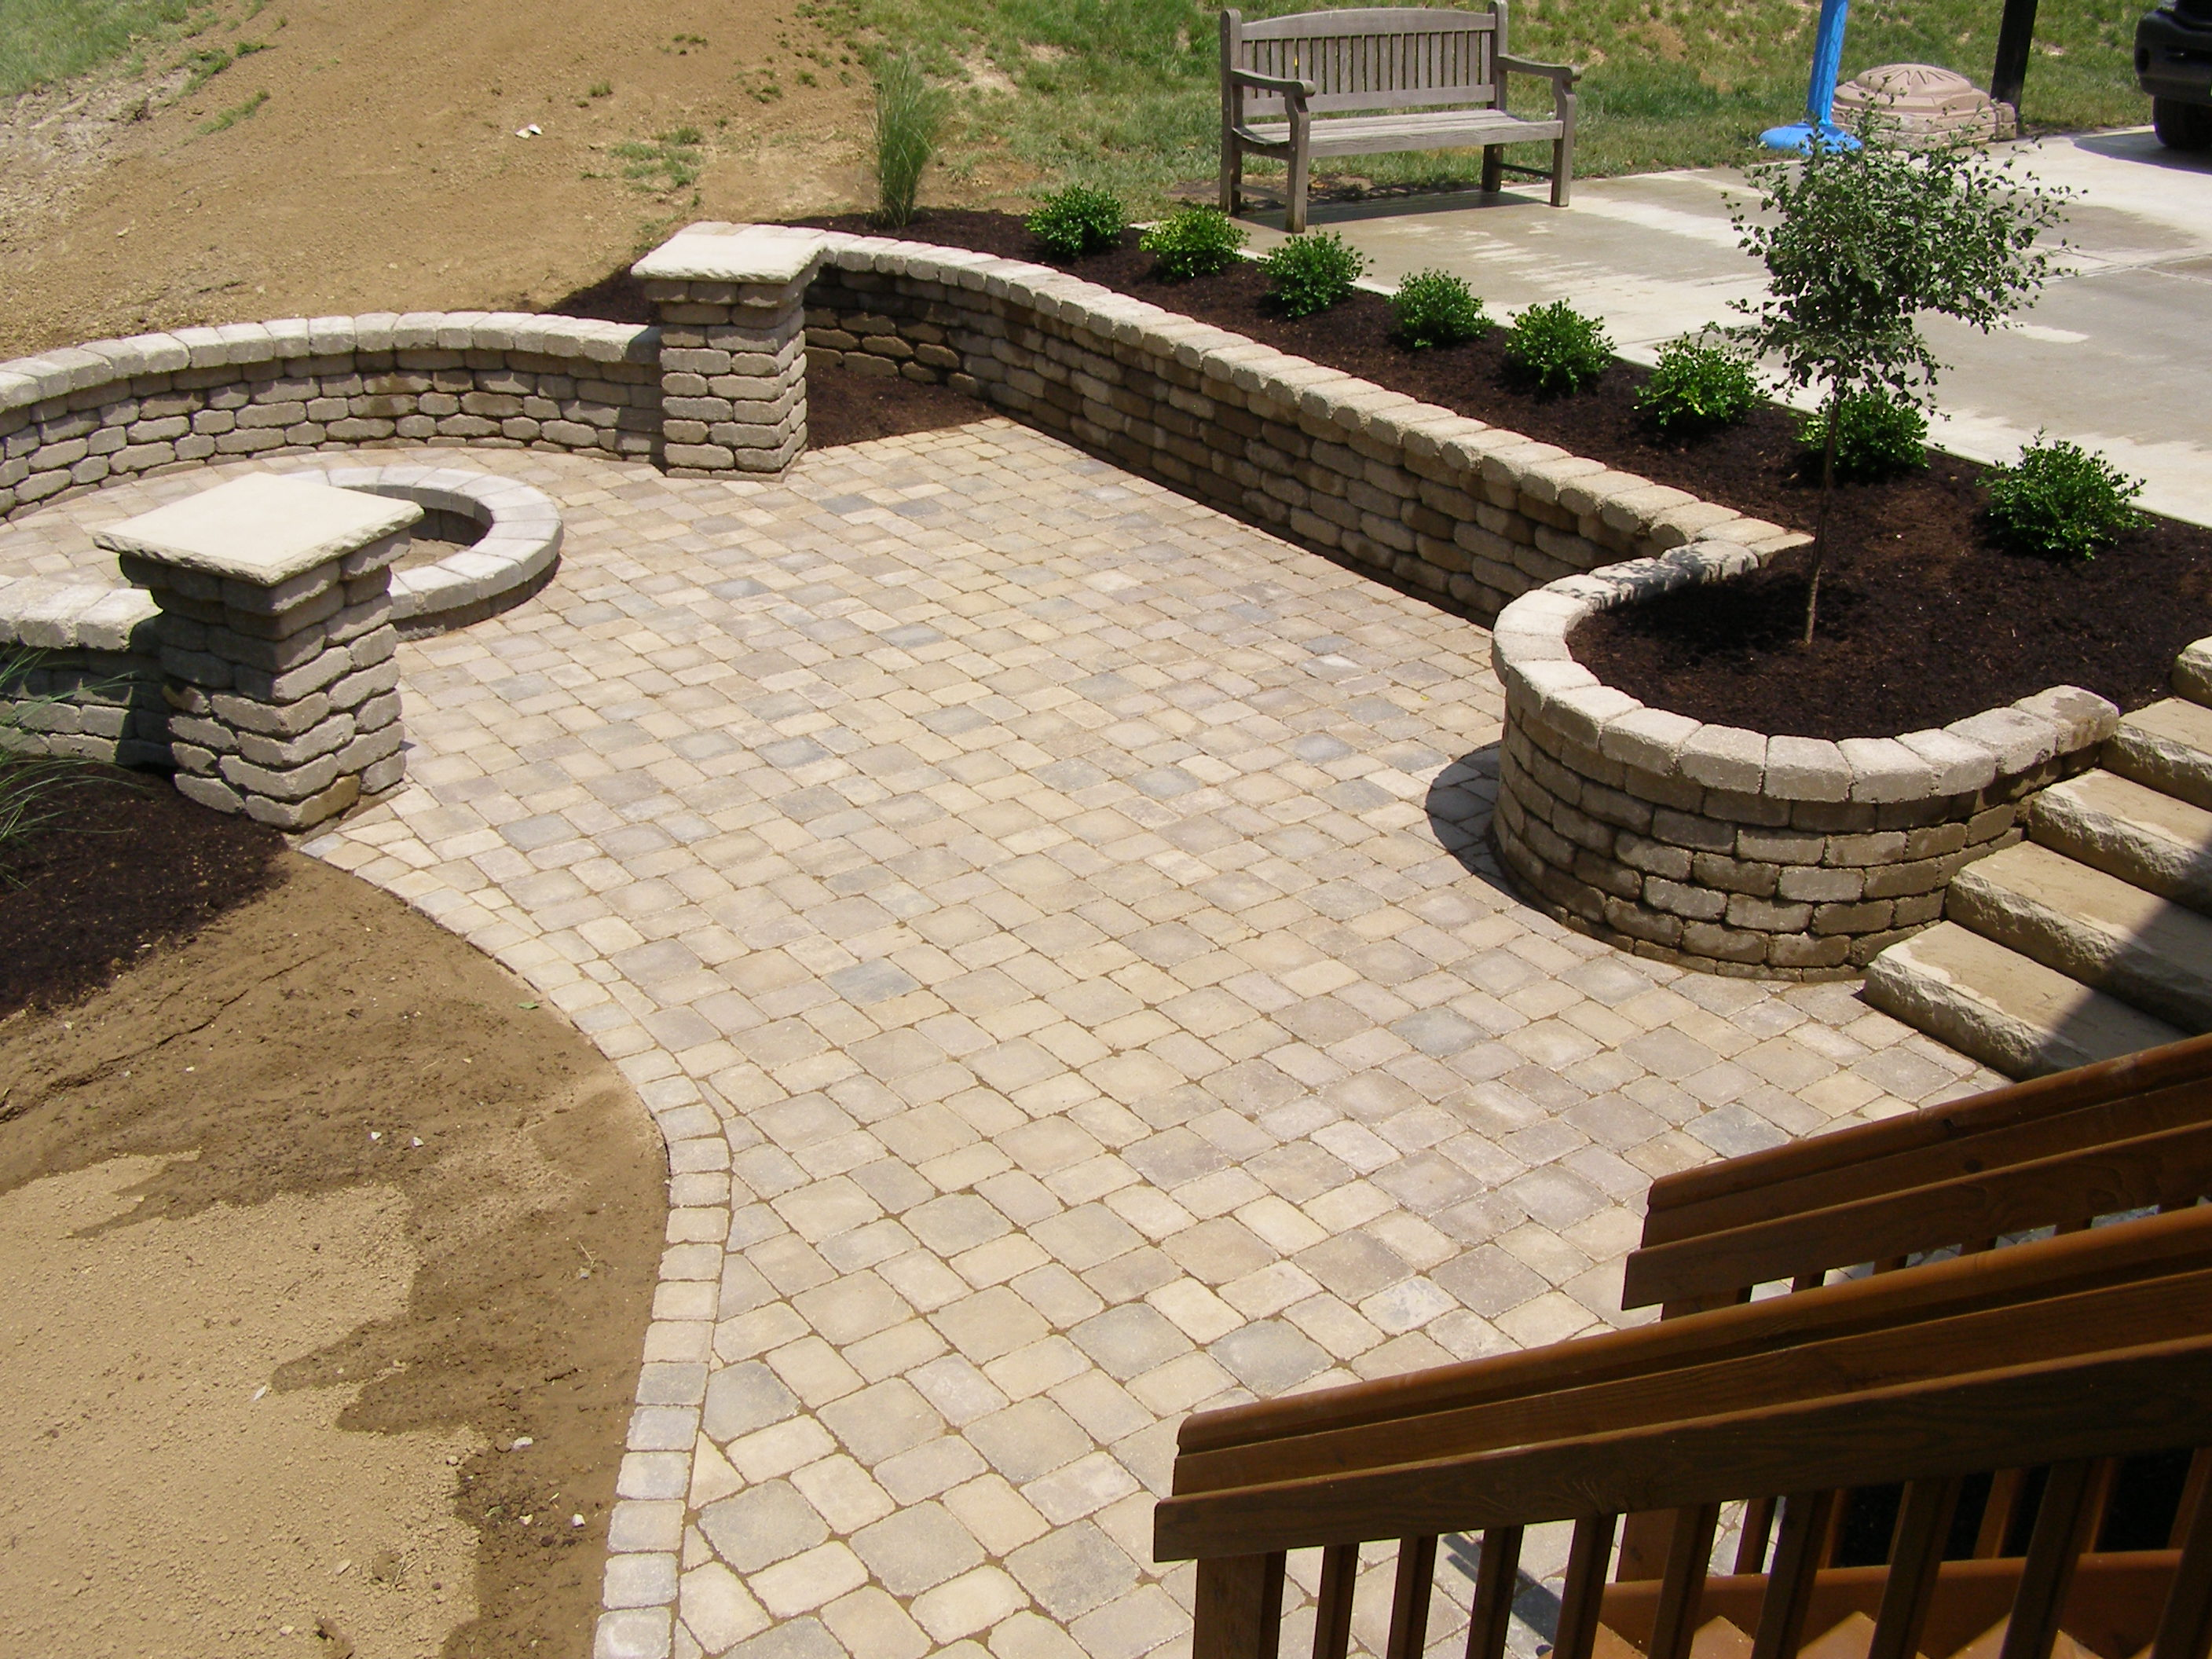 20 Exclusive Stone Patio Designs & Patterns Guide | Decor ... on Rock Patio Designs id=35610